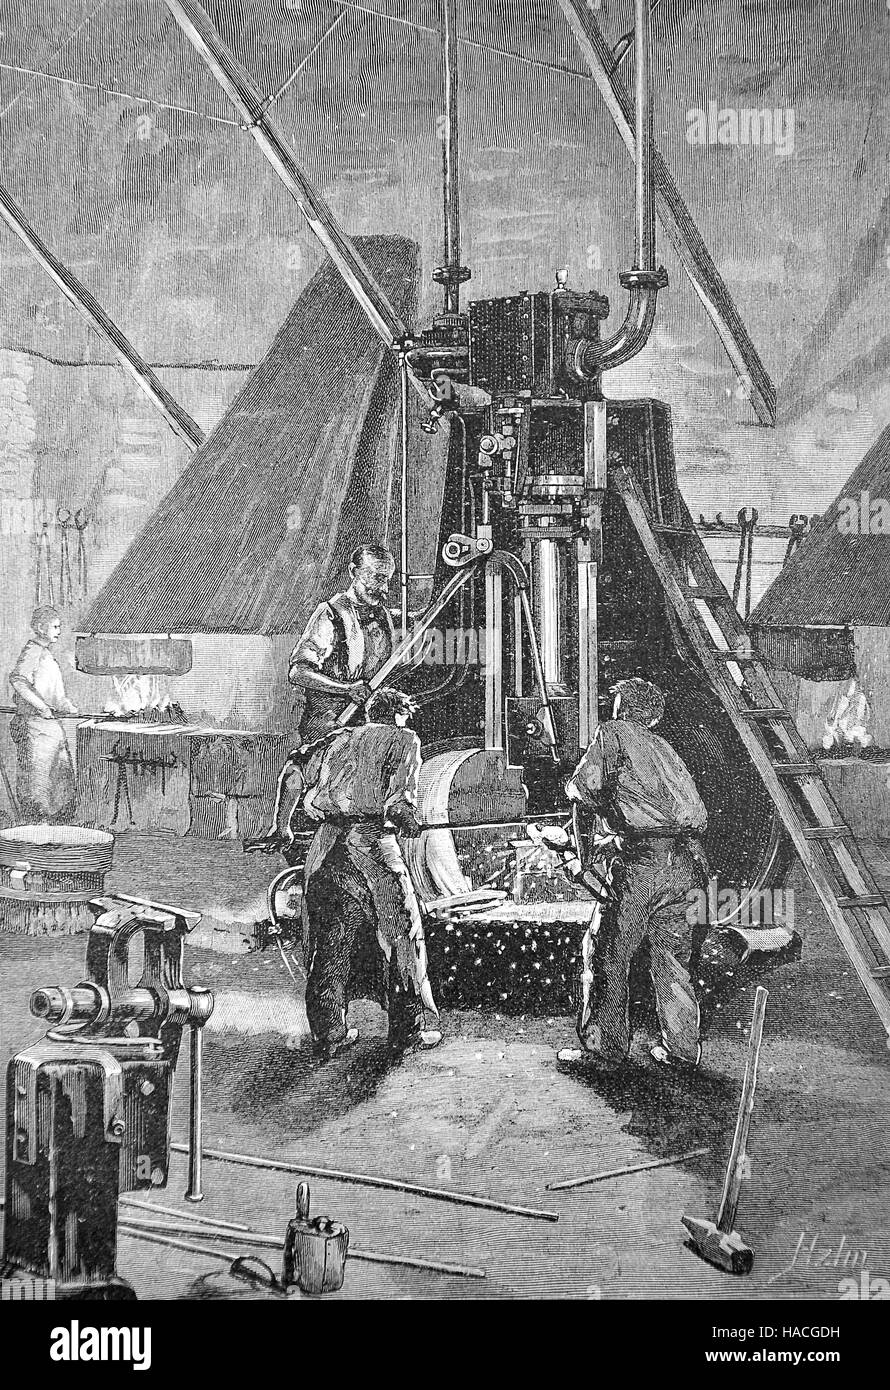 A steam hammer, a power hammer driven by steam, metal working, 1845, historic illustration, woodcut - Stock Image